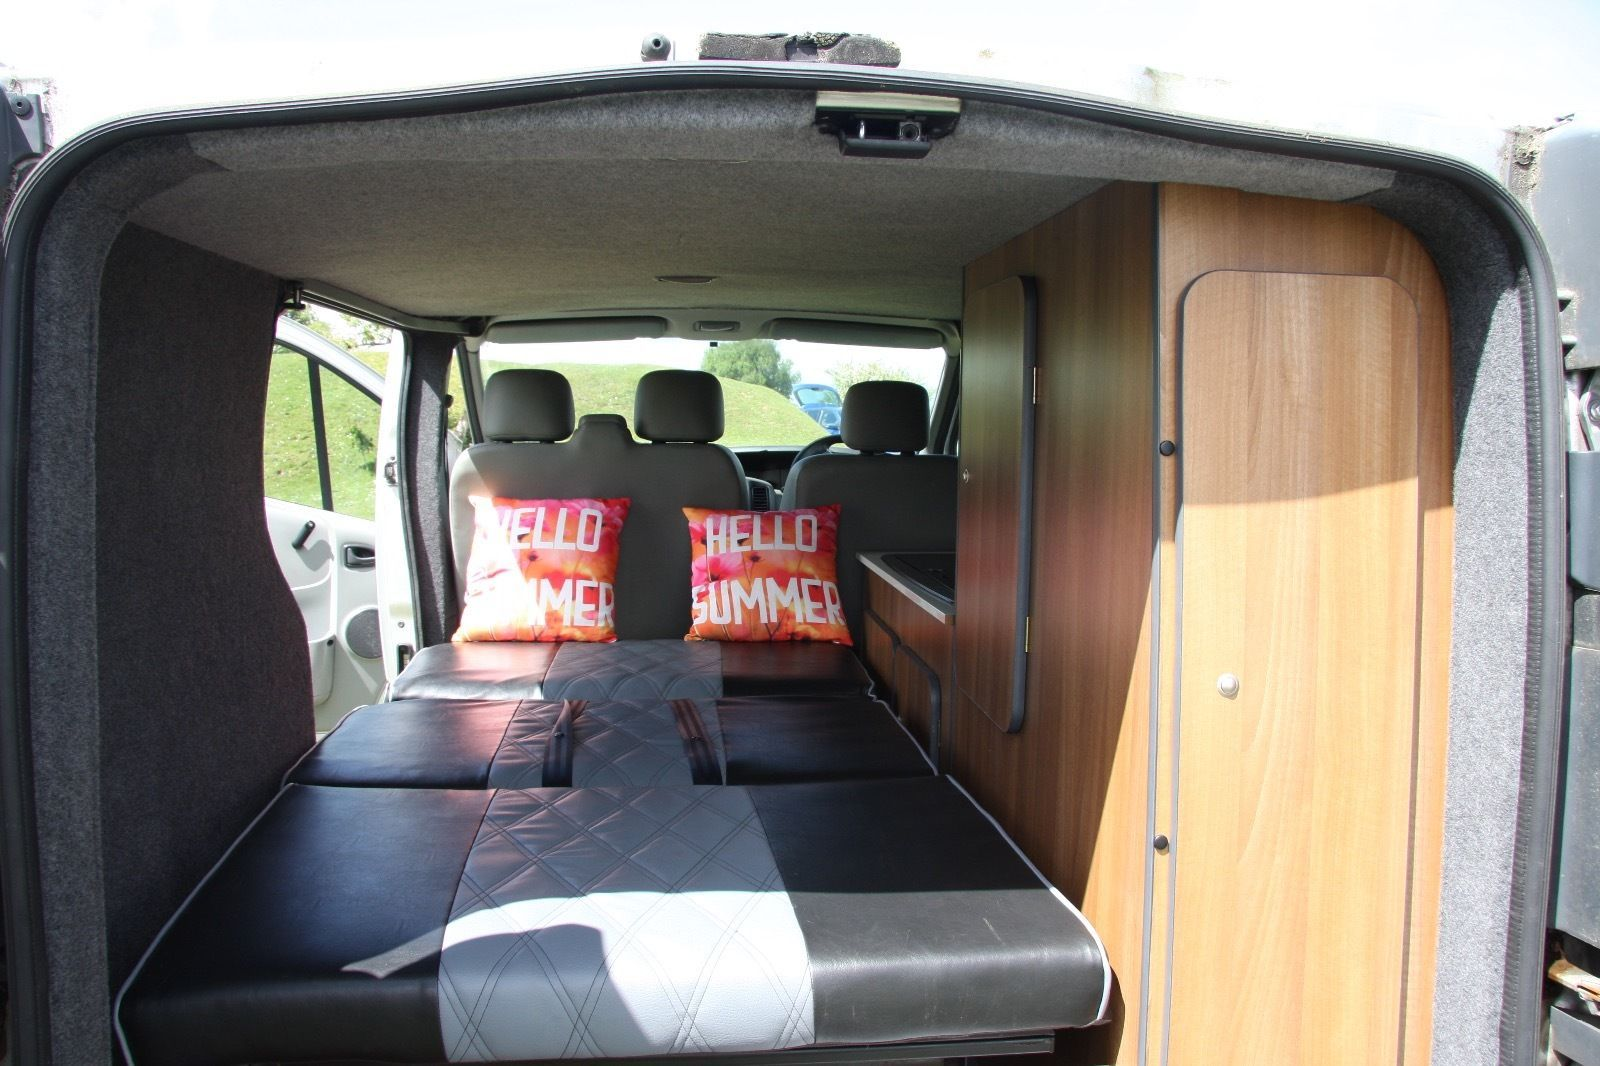 The van has been converted to a very high standard using quality